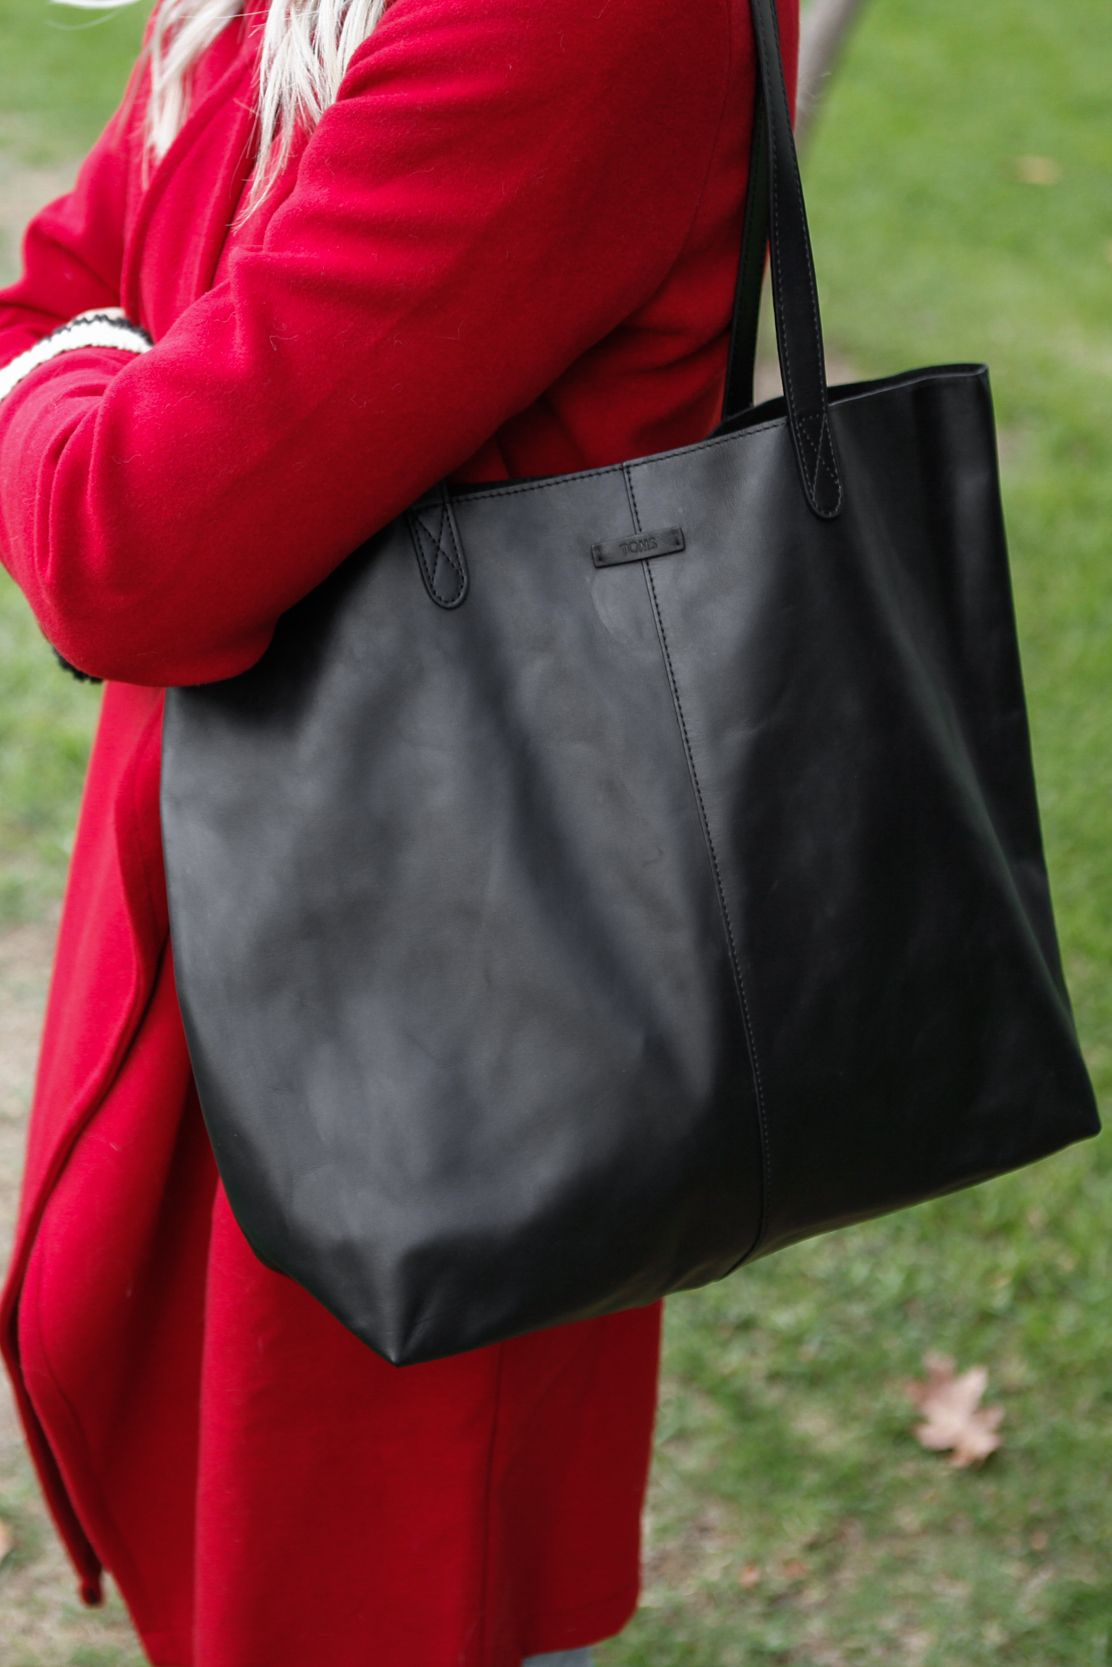 a1c97761337 TOMS Matte Black Leather Cosmopolitan Tote. This tote bag is a great option  for work and school.